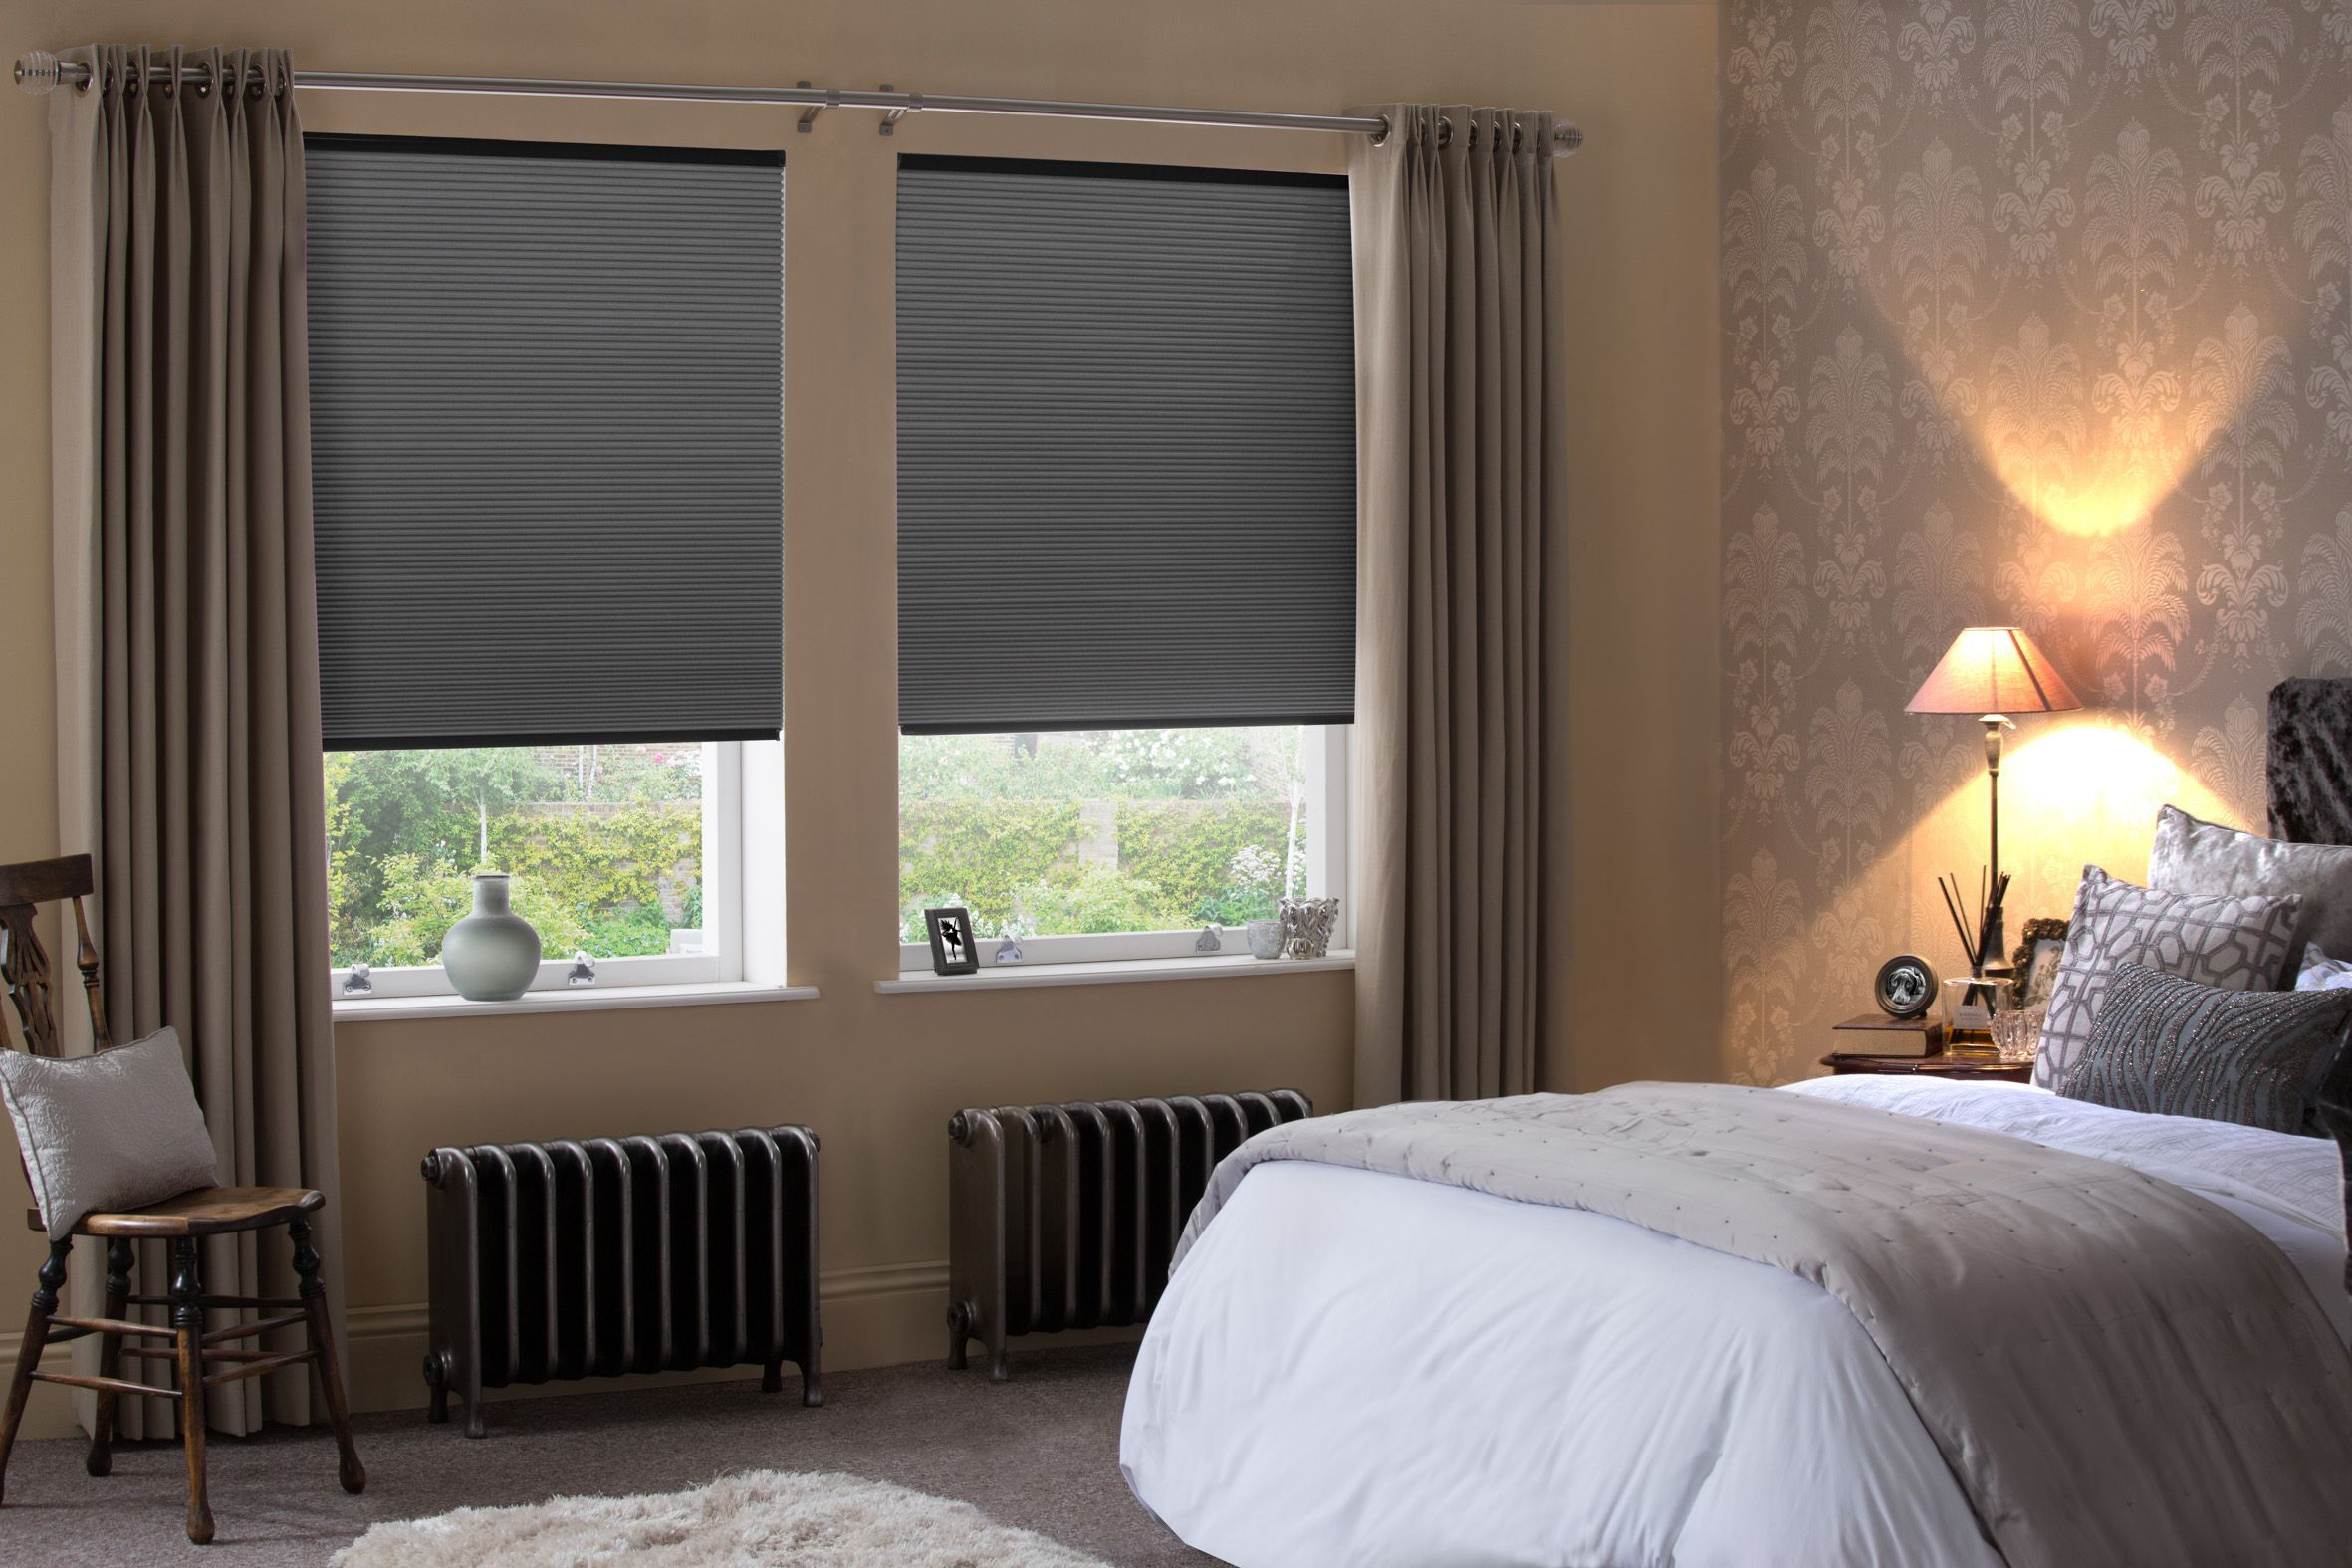 Bedroom window ideas  hive blinds from style studio silver grey bedroom blinds best